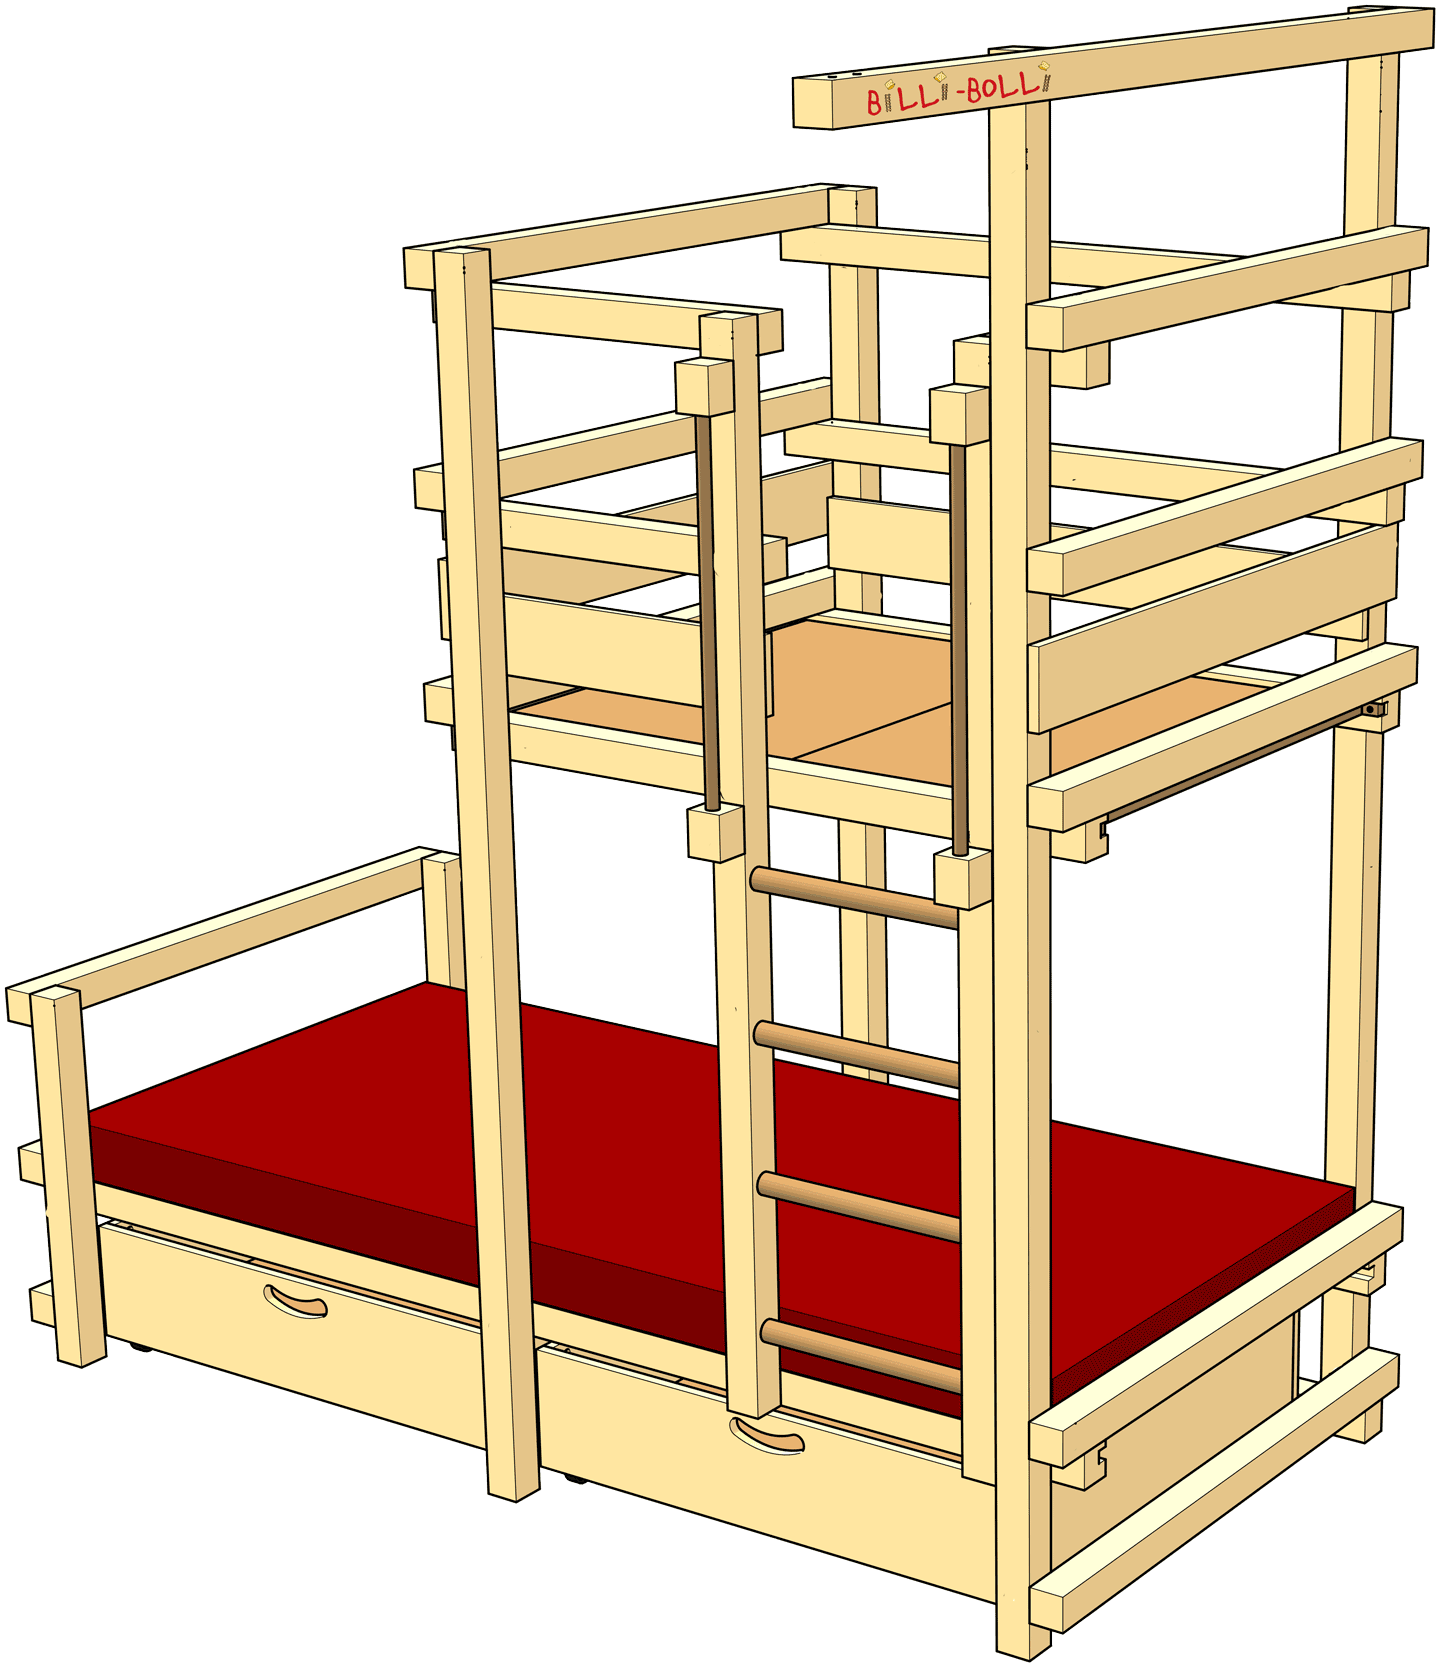 Pitched Roof Bed: The ingenious kids' play bed for the pitched roof